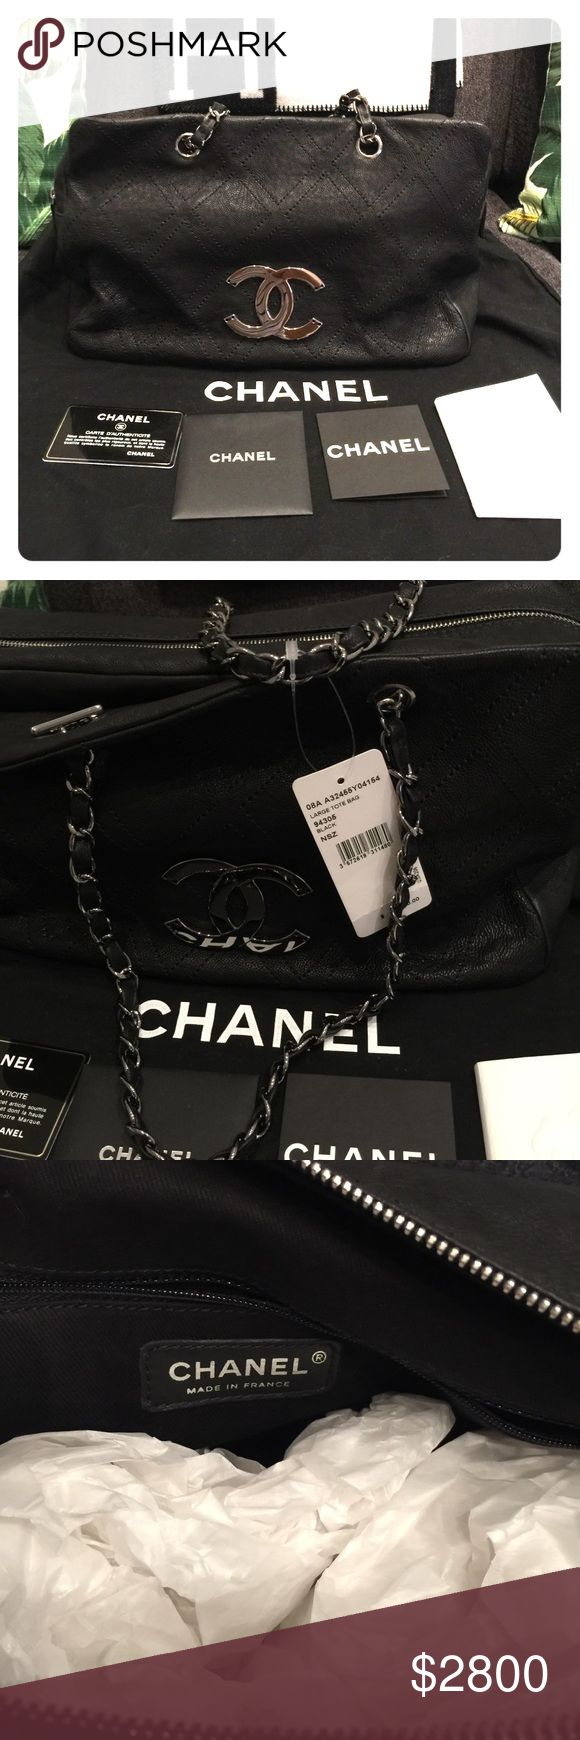 Chanel large tote bag New condition with original tag.  Never been used.  Has been in my closet for years.  Comes with authenticity card and dust bag.  No box.  Have original receipt but the prints faded ovwr time.  Purchased at South Coast Plaza in Costa Mesa. CHANEL Bags Shoulder Bags